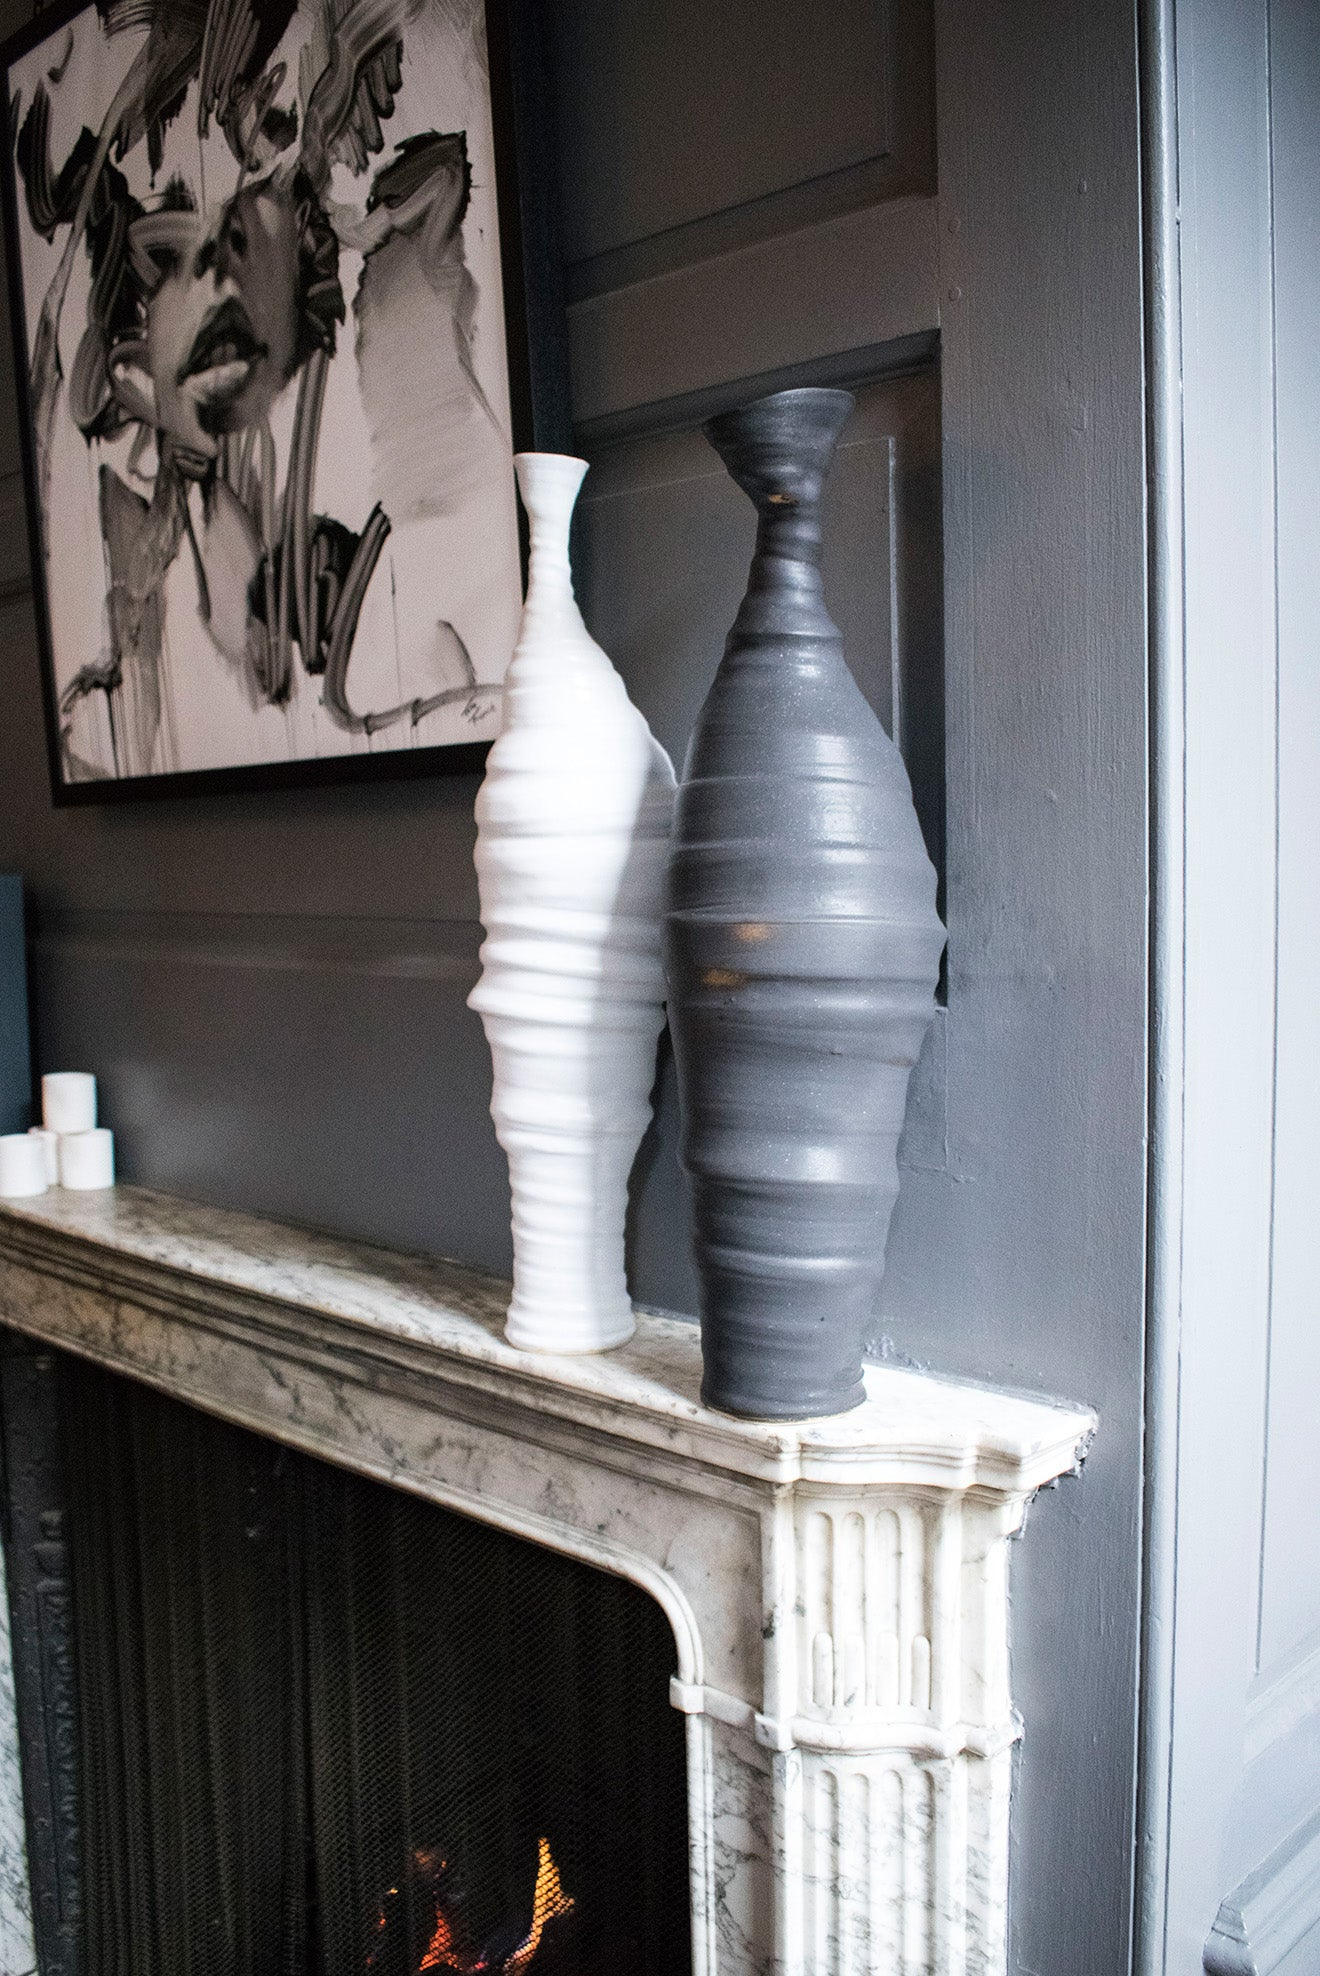 Author Interiors Tall Freeform Ceramic Sculpture by Penny Withers